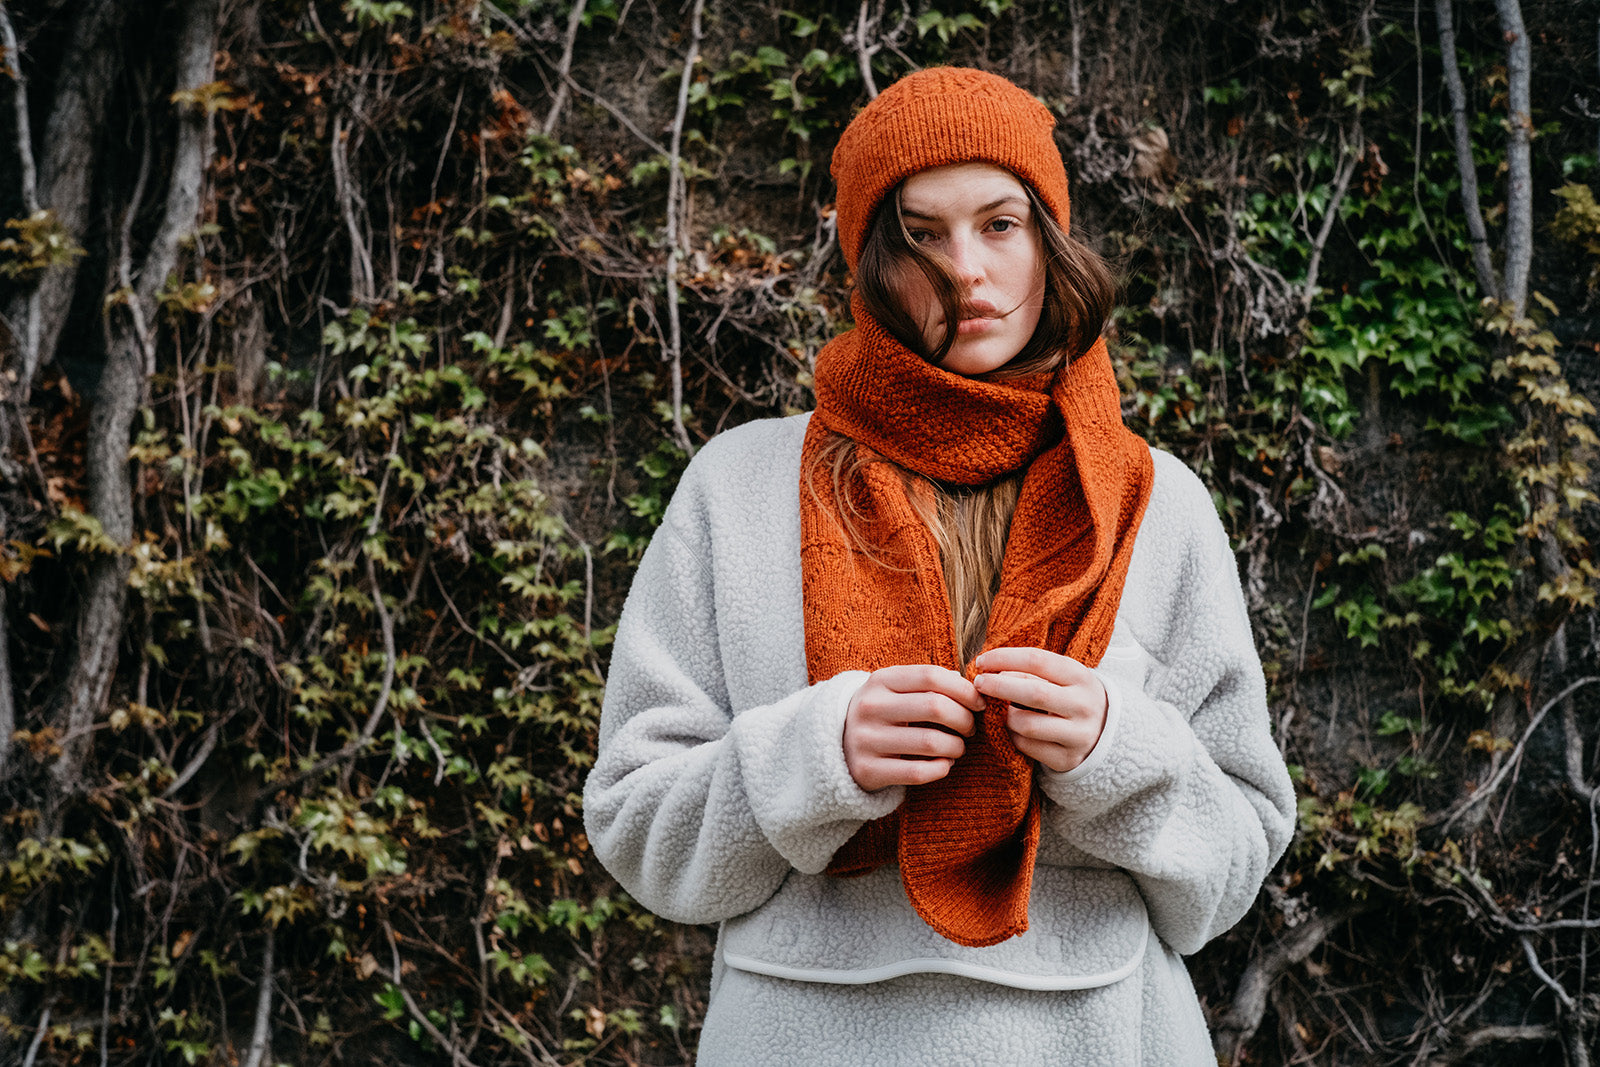 A British female model wearing Snow Peak Apparel AW21 Thermal fleece pullover and alpaca knit hat and scarf